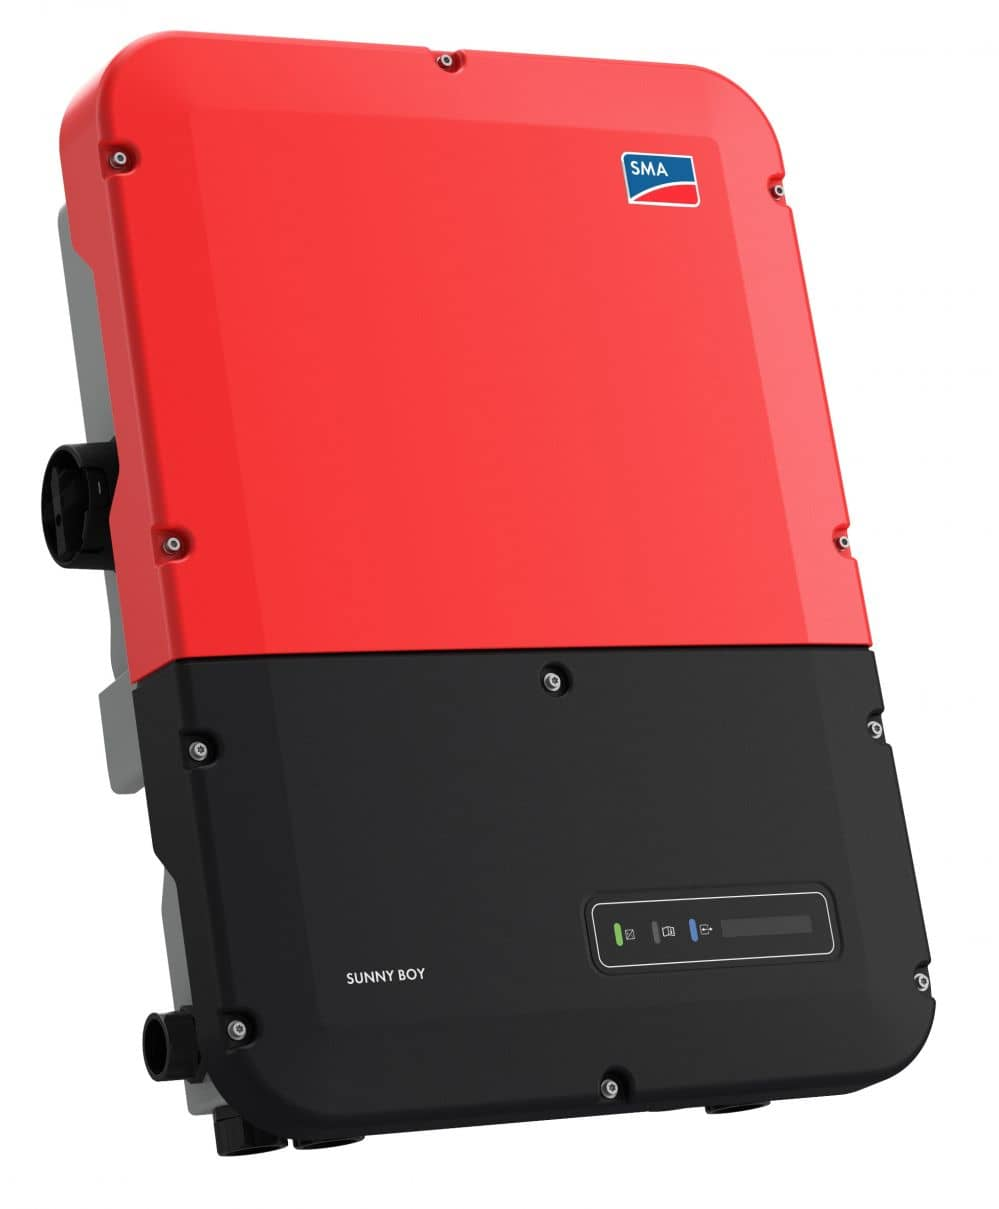 16009_sunny_boy_5.0-us_6.0-us SMA Releases Improved Sunny Boy Model For Residential Inverter Line